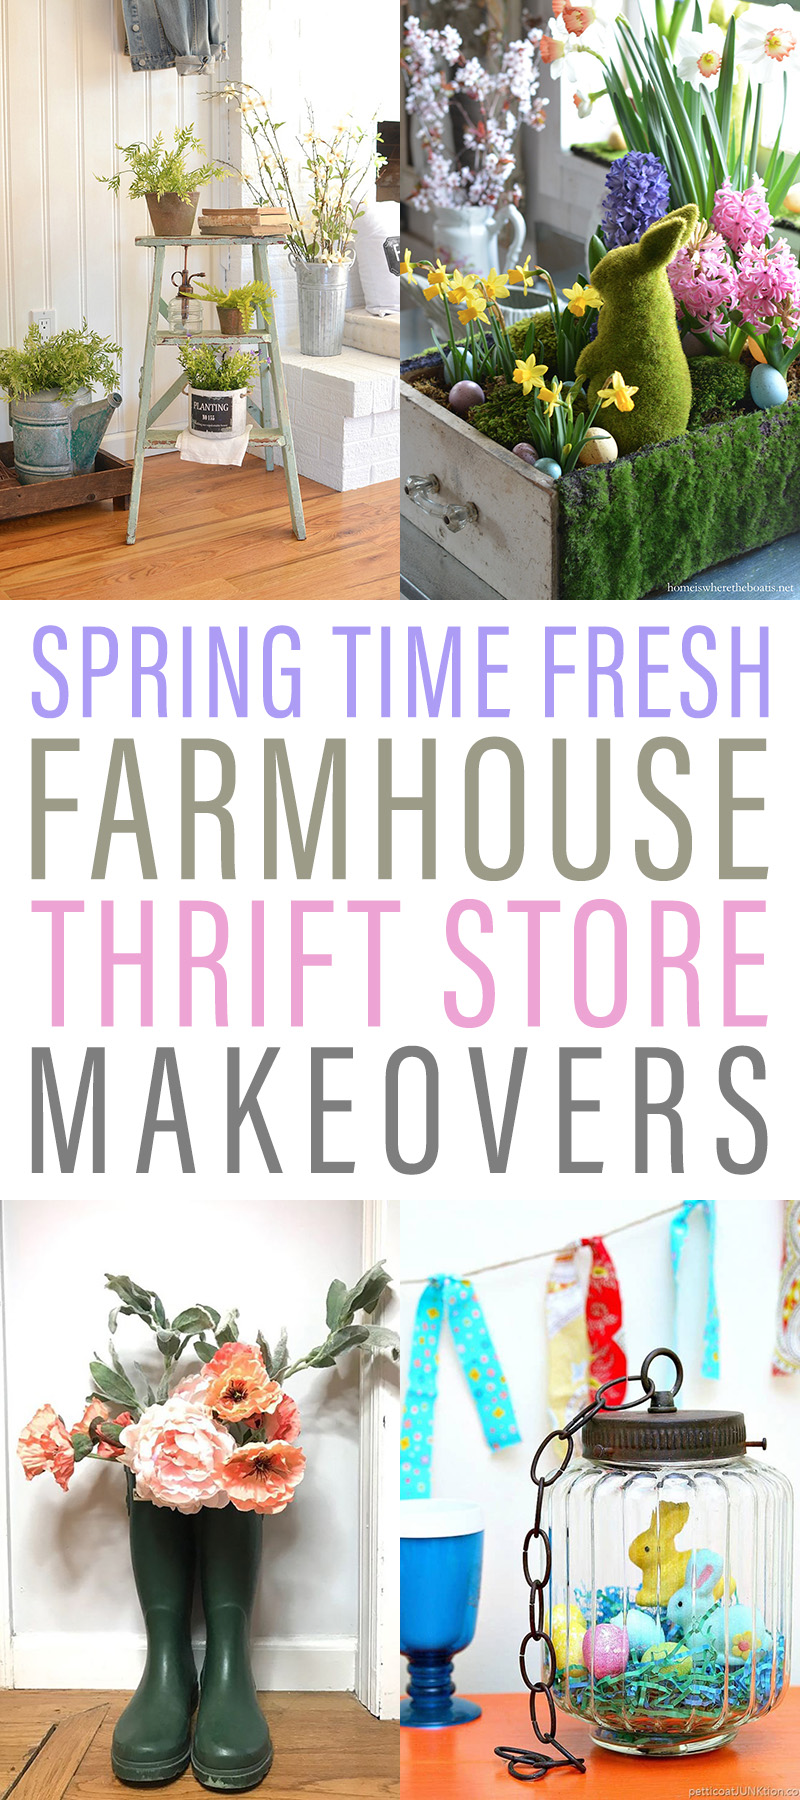 Spring Time Fresh Farmhouse Thrift Store Makeovers